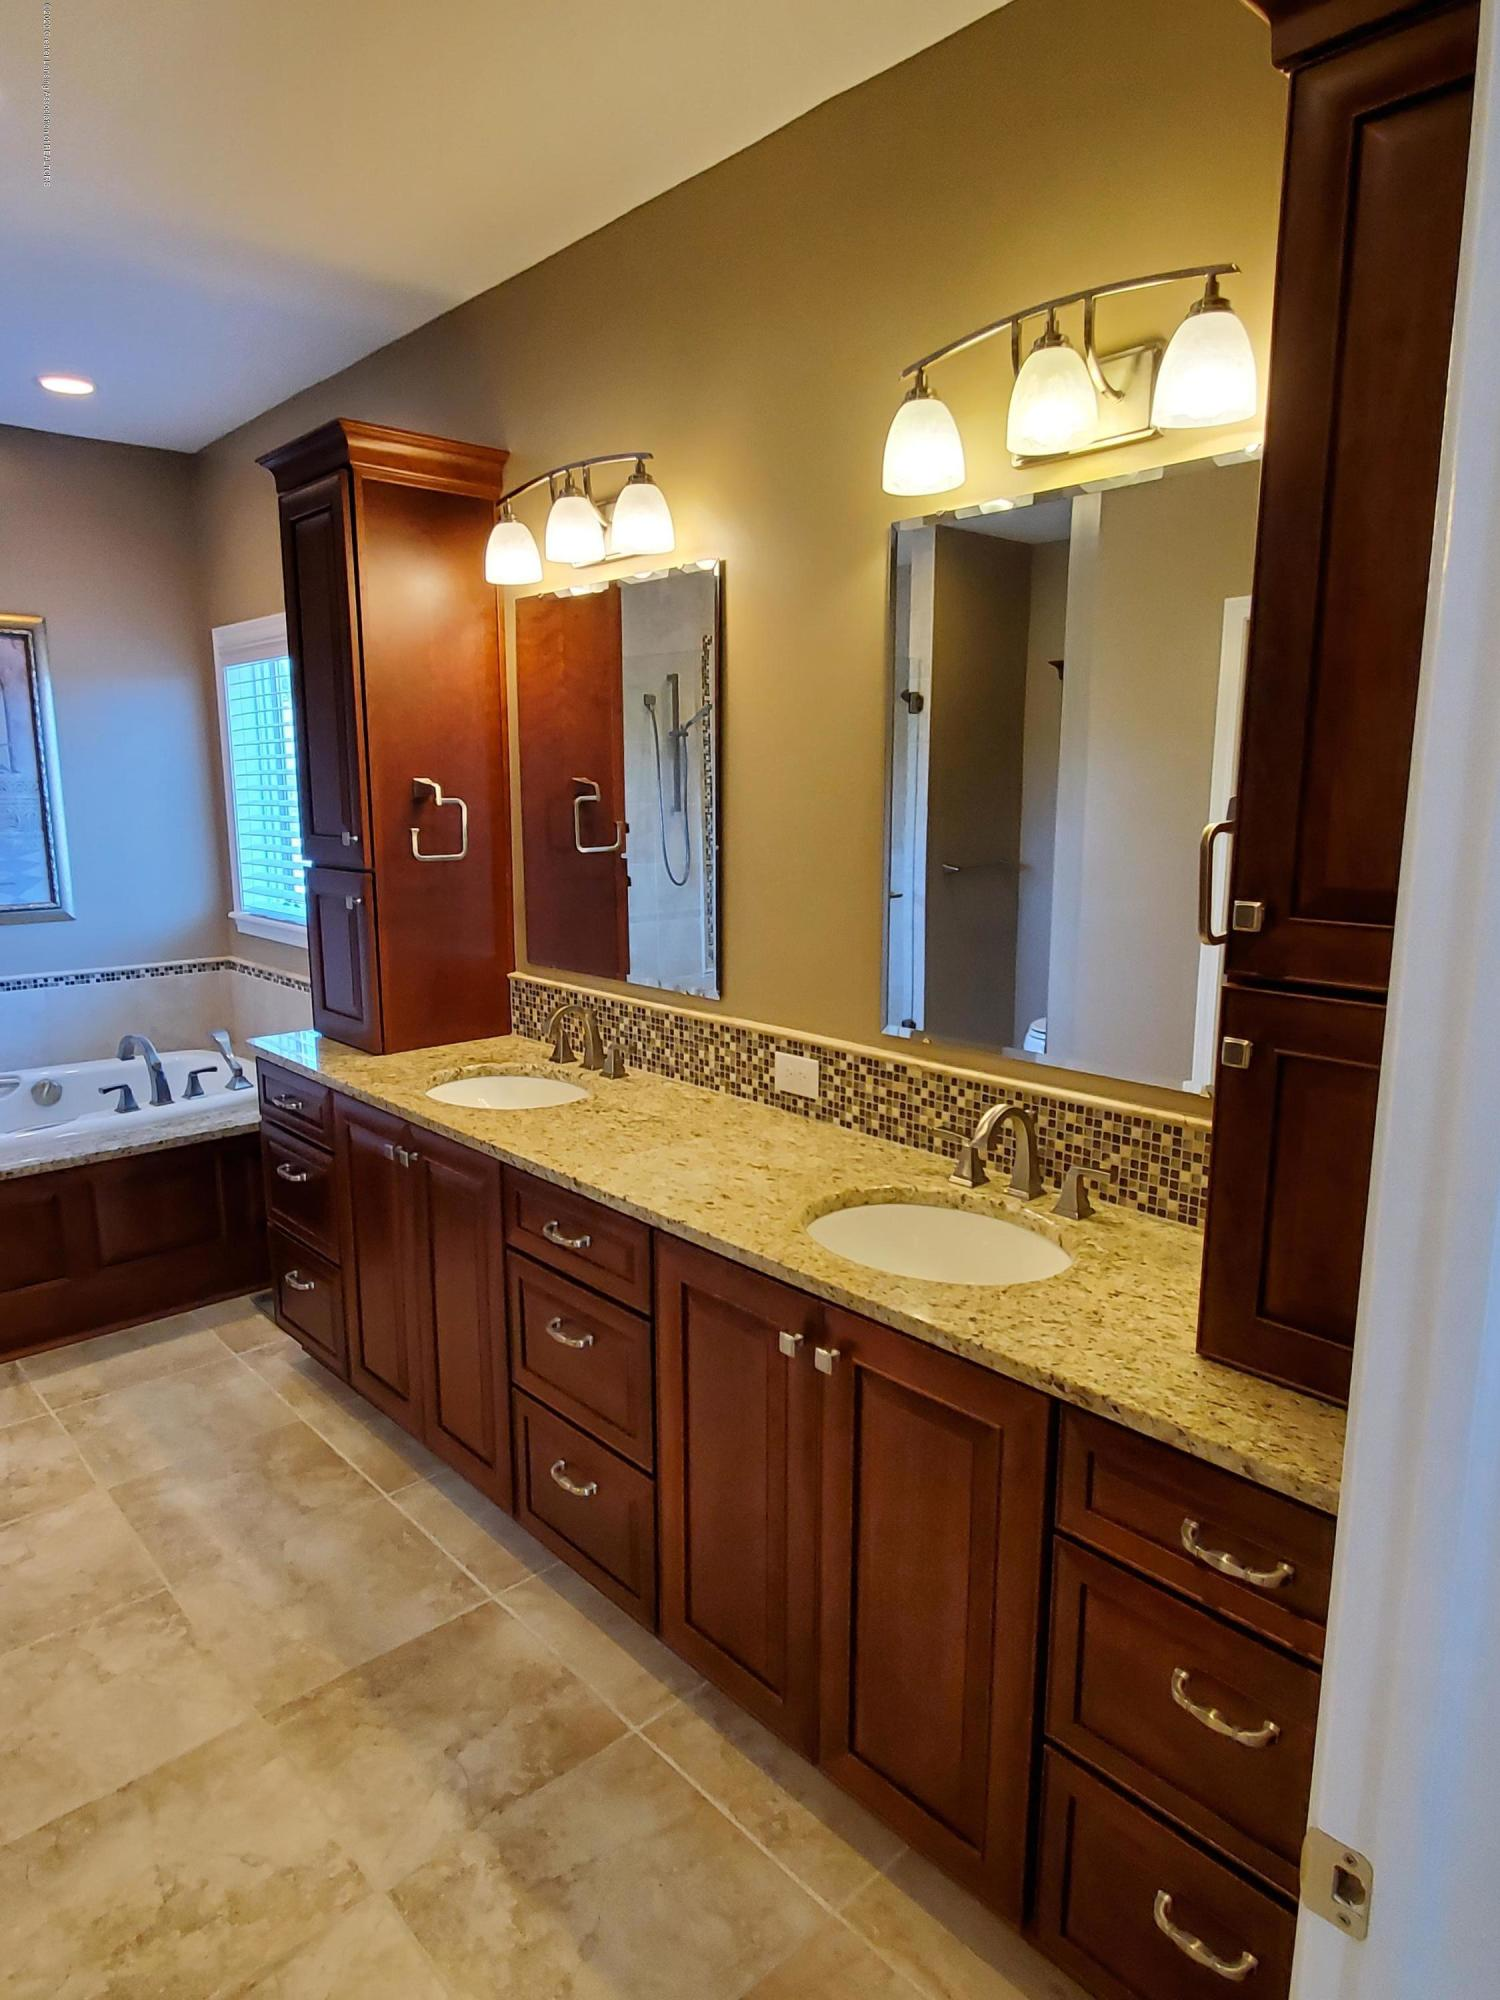 558 N Wheaton Rd - Master Bath/Spa - 29